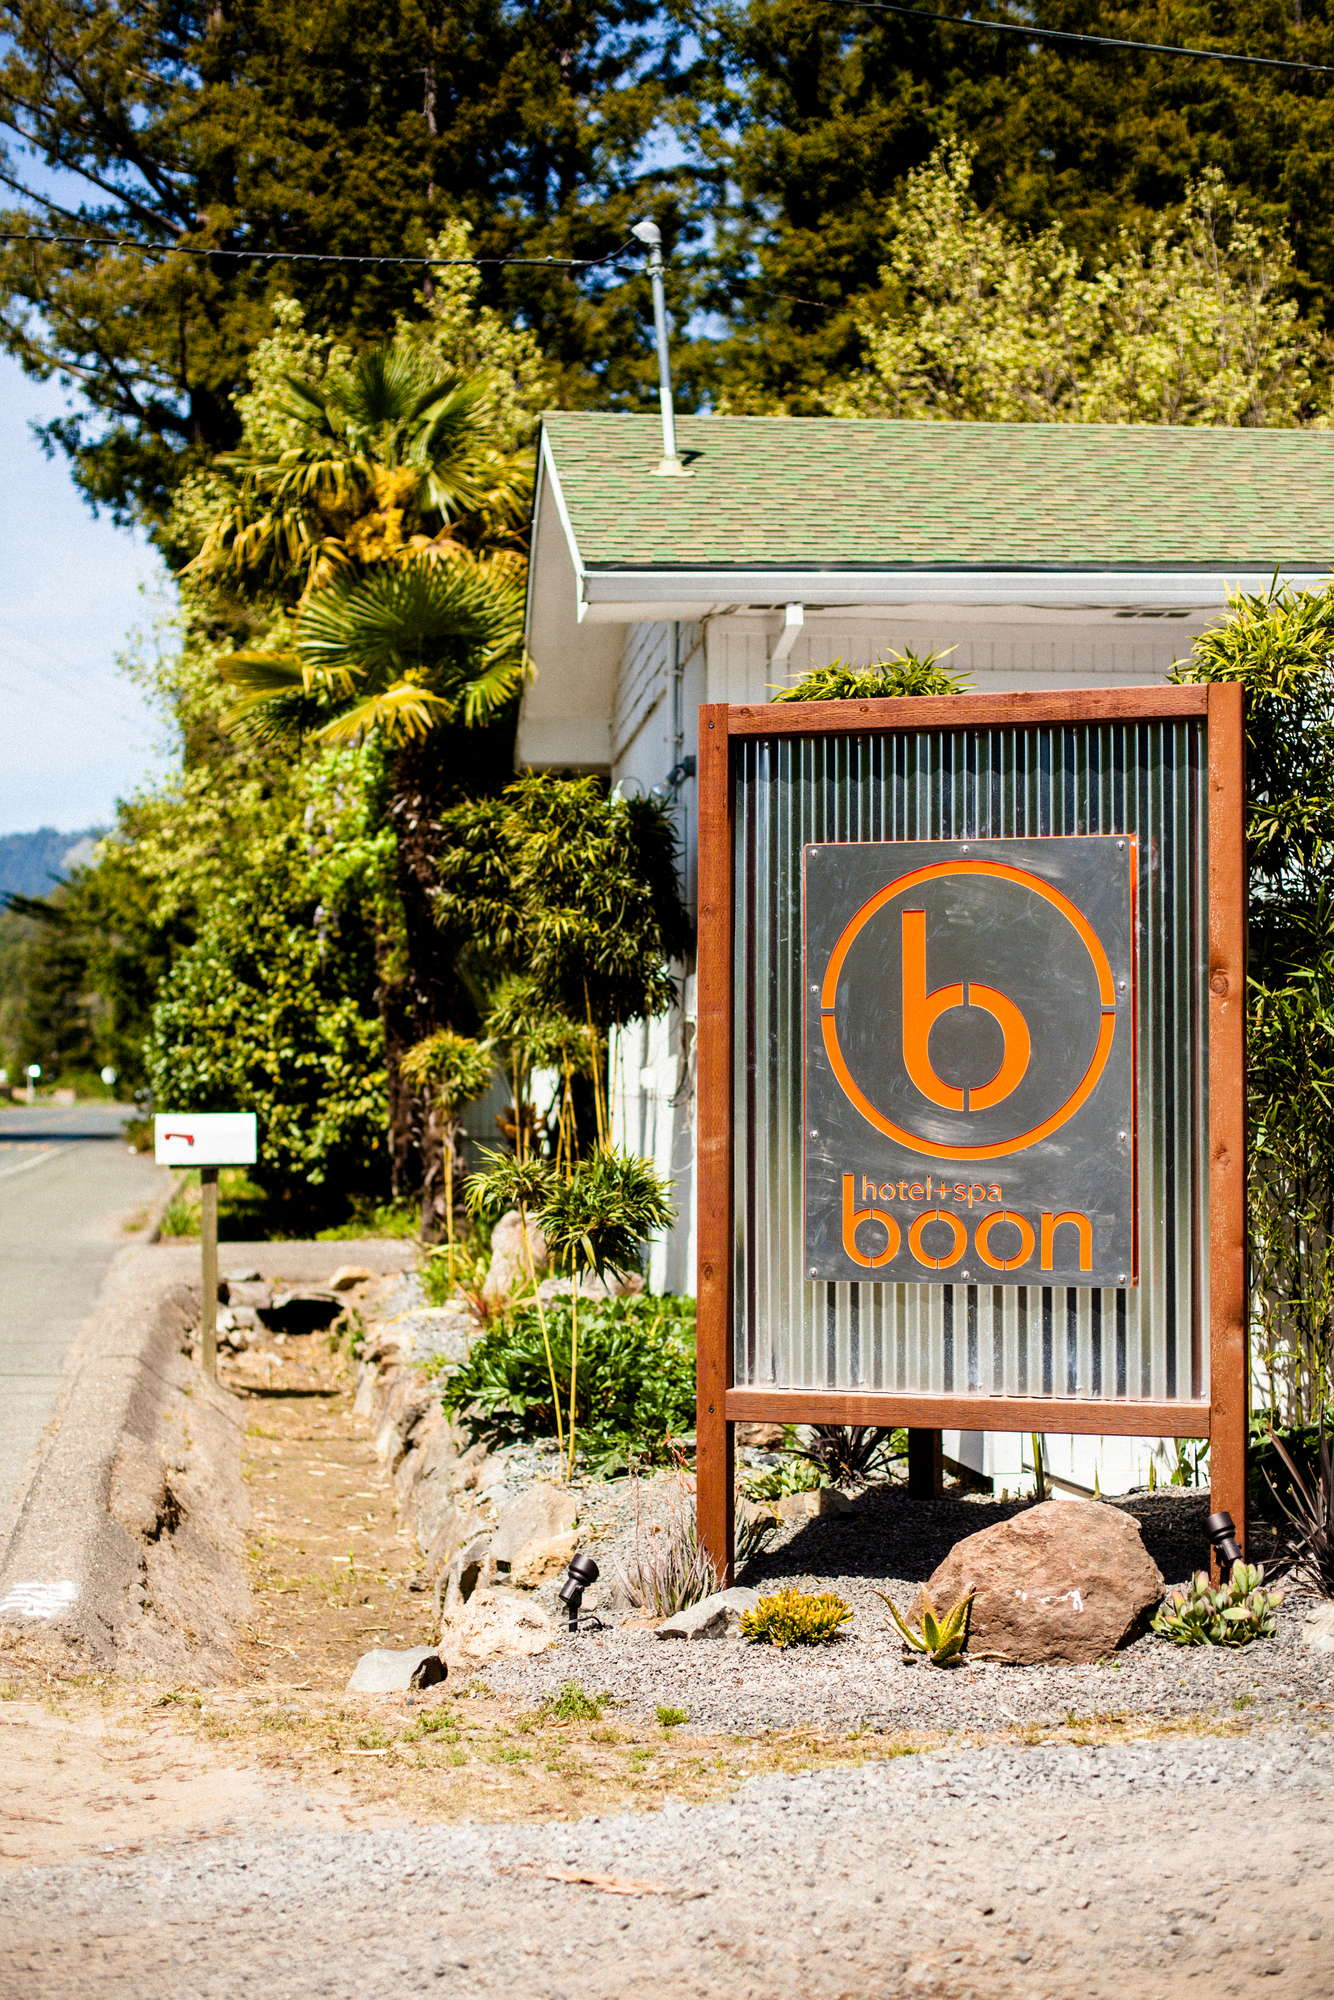 boon hotel+spa Expert Review | Fodor's Travel